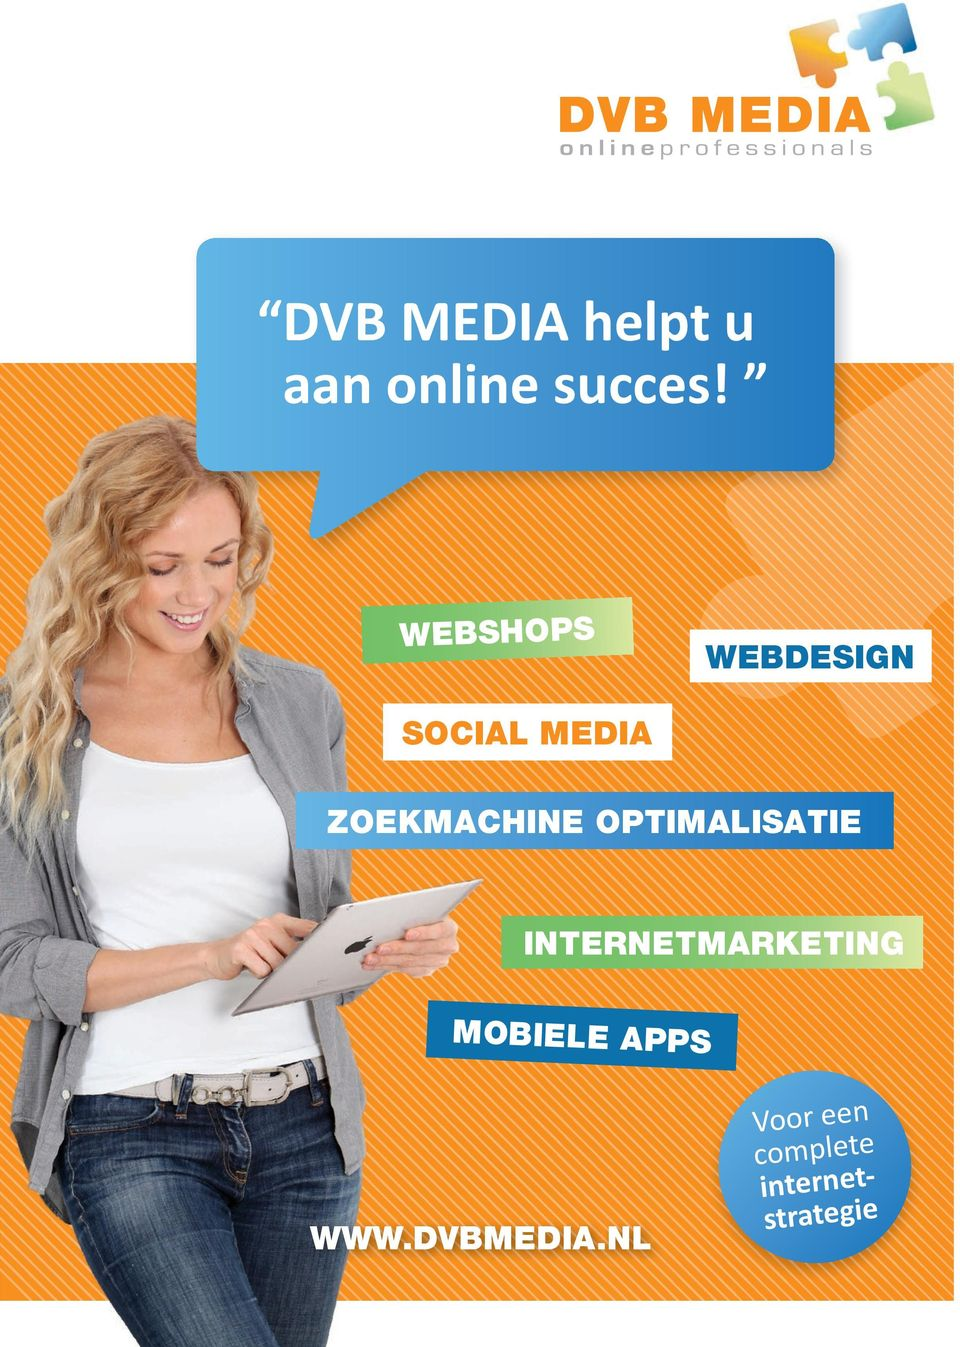 OPTIMALISATIE INTERNETMARKETING MOBIELE APPS